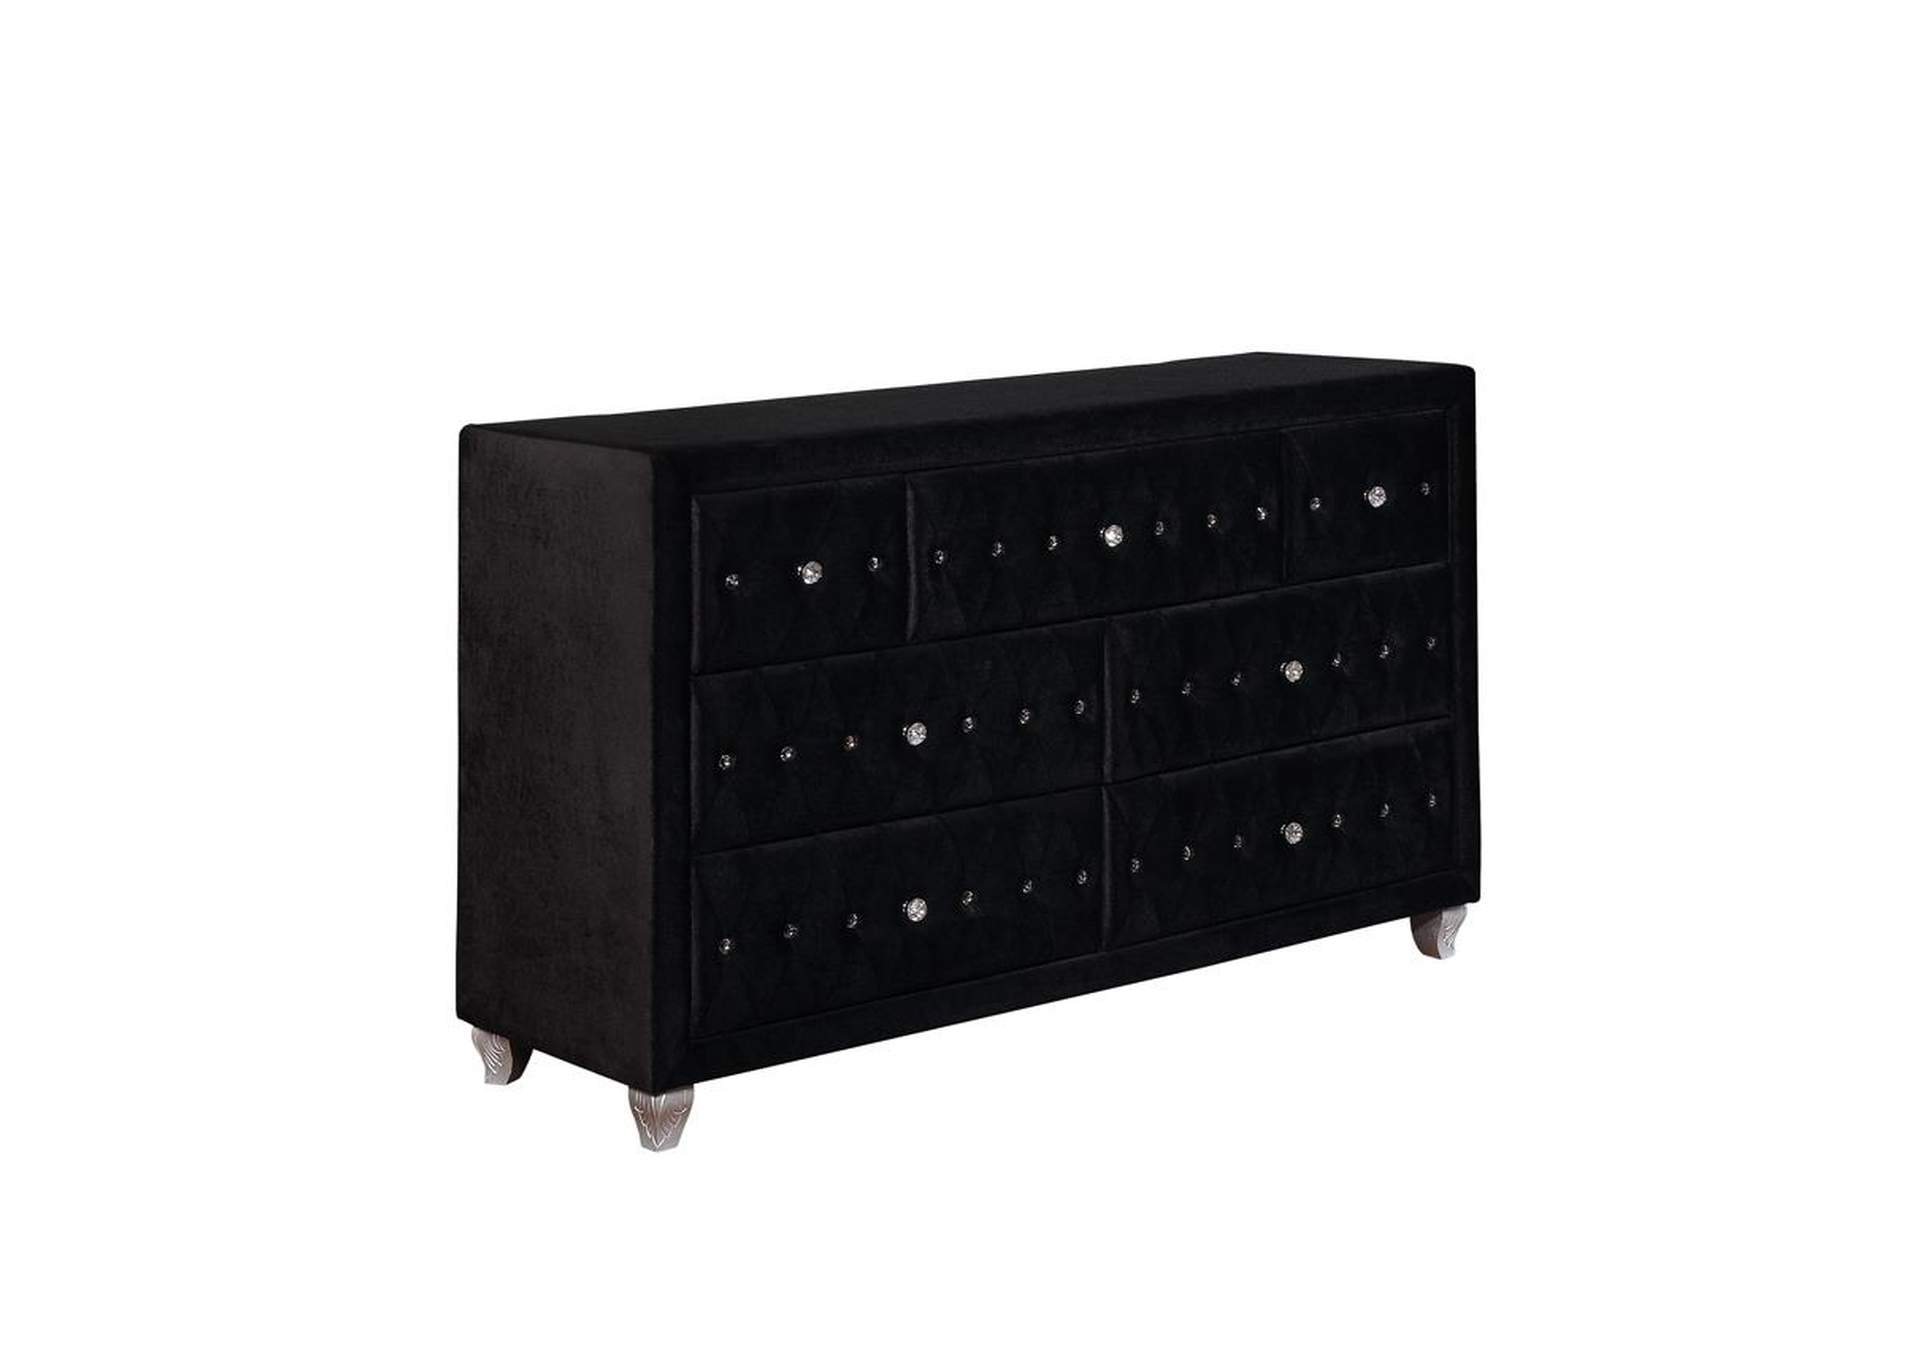 Metallic Deanna Contemporary Black and Metallic Dresser,Coaster Furniture